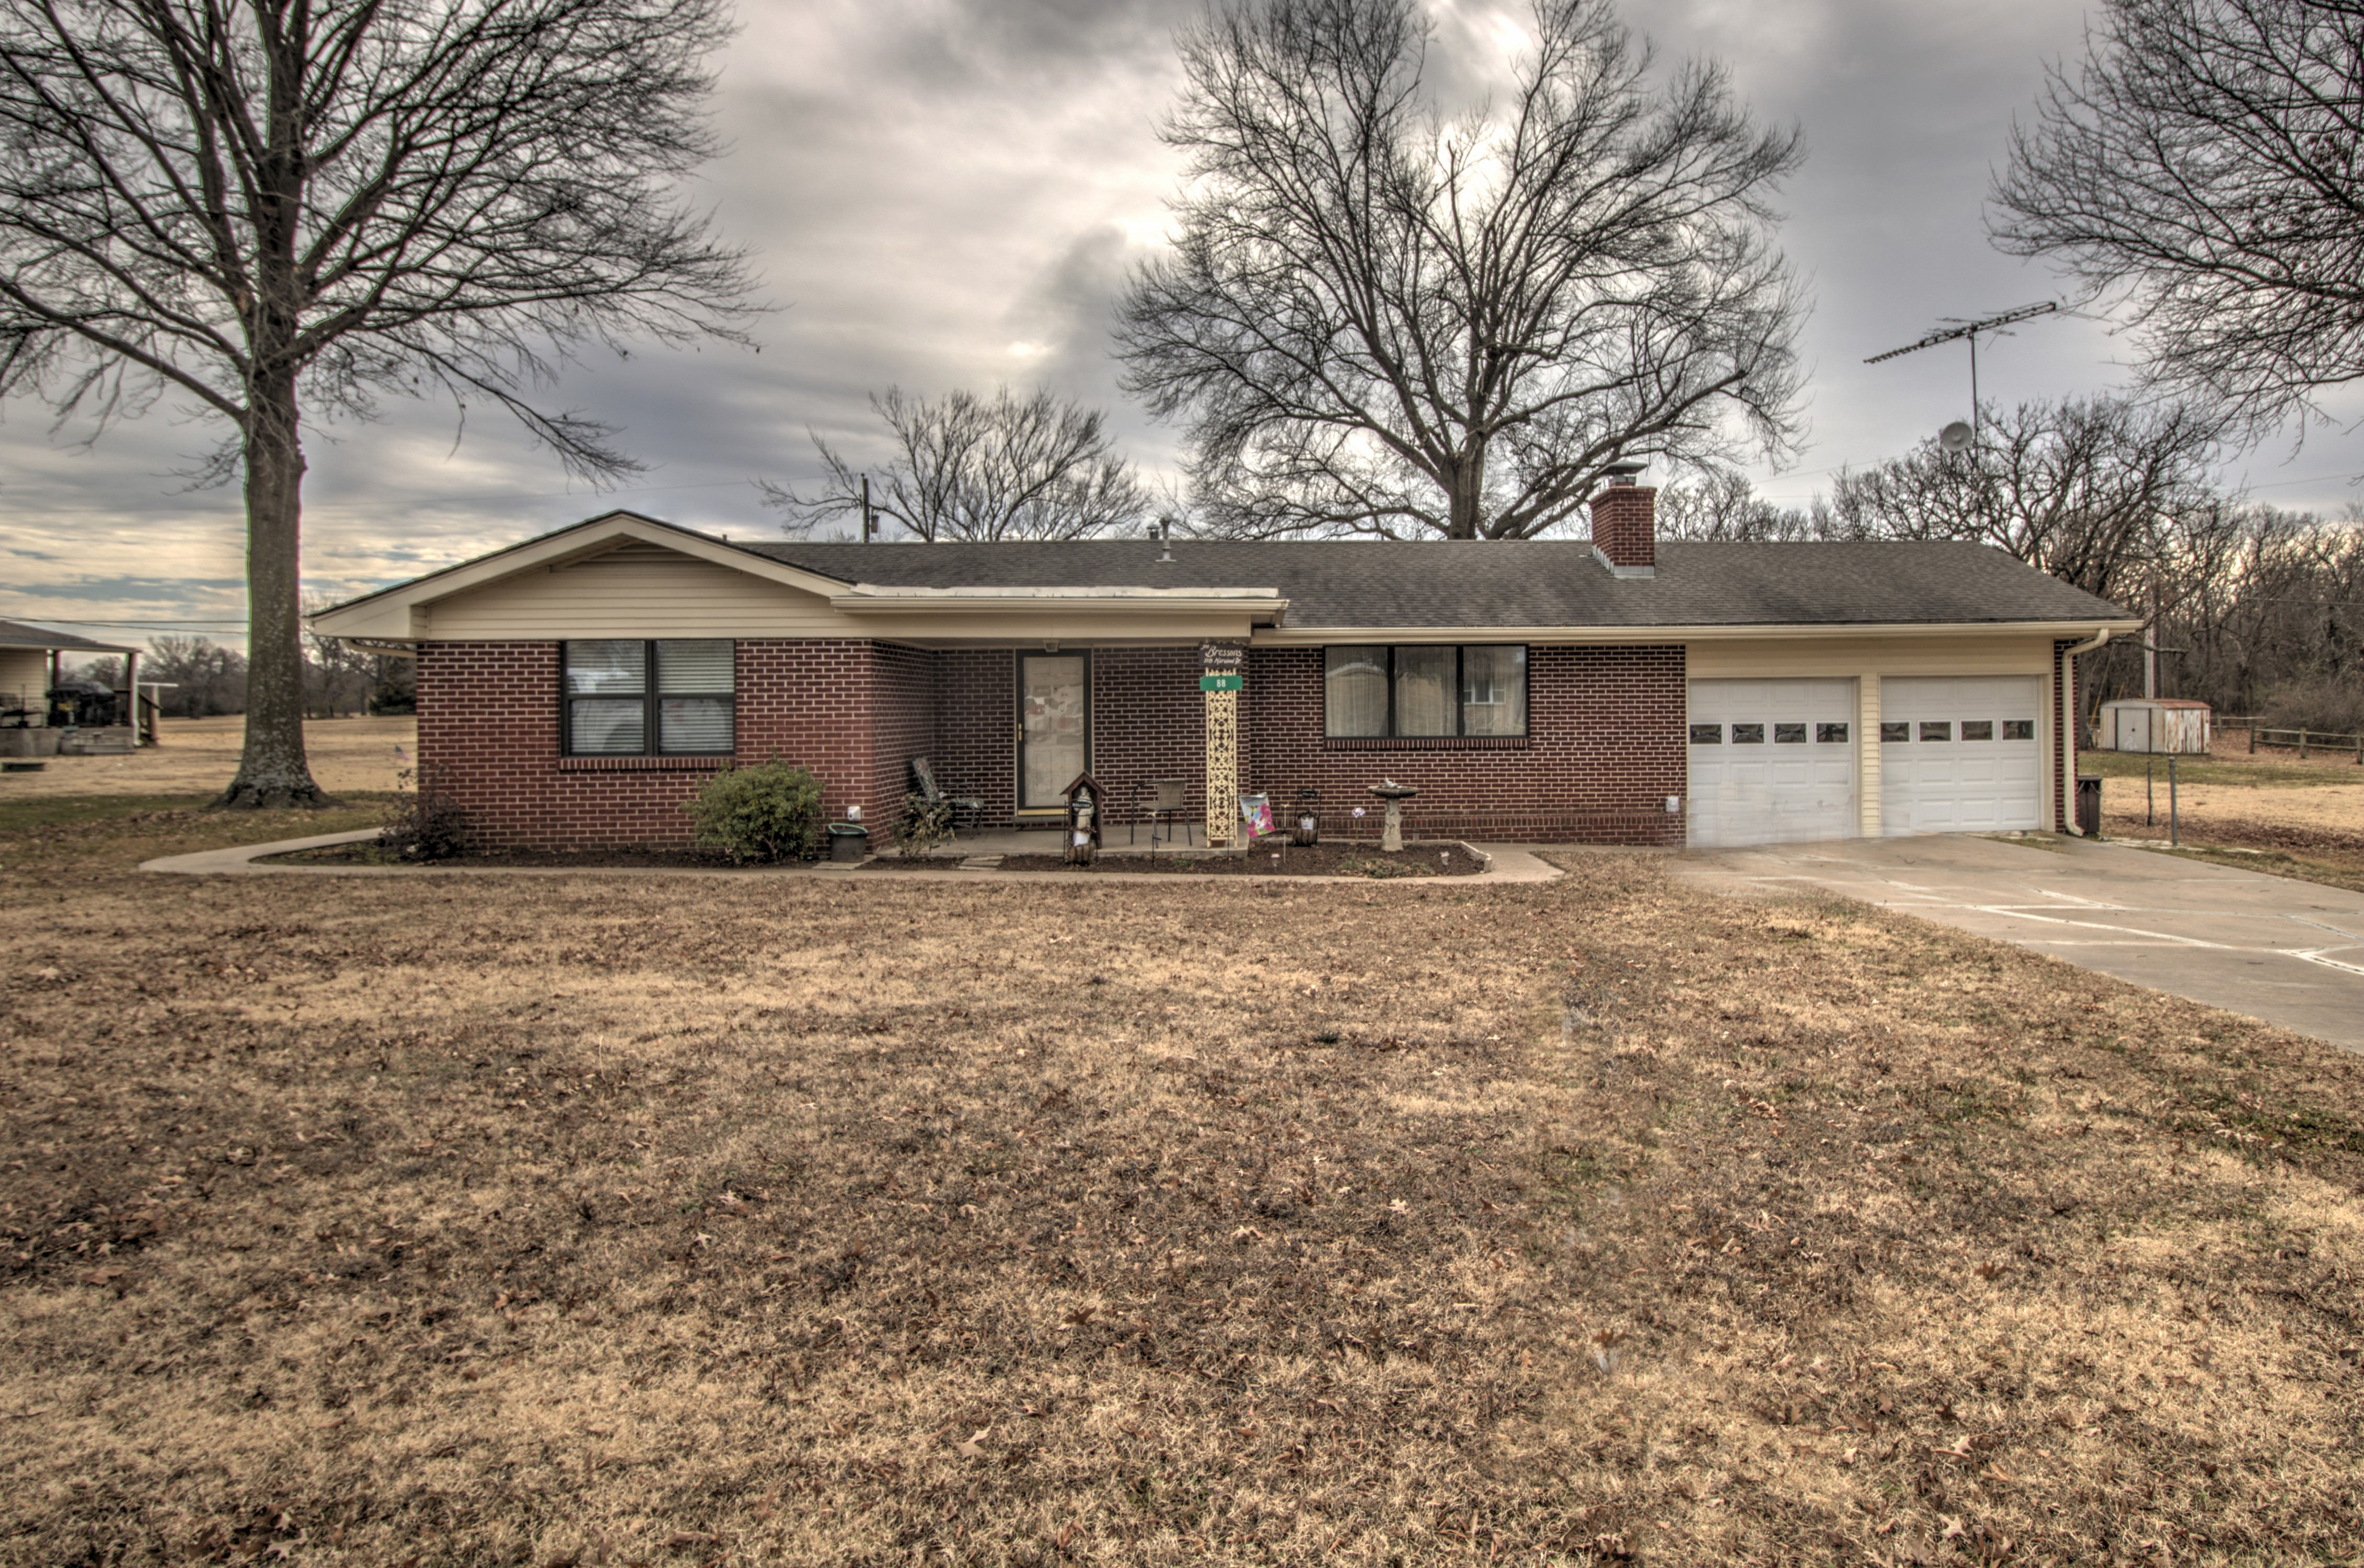 88 2197 Road Property Photo